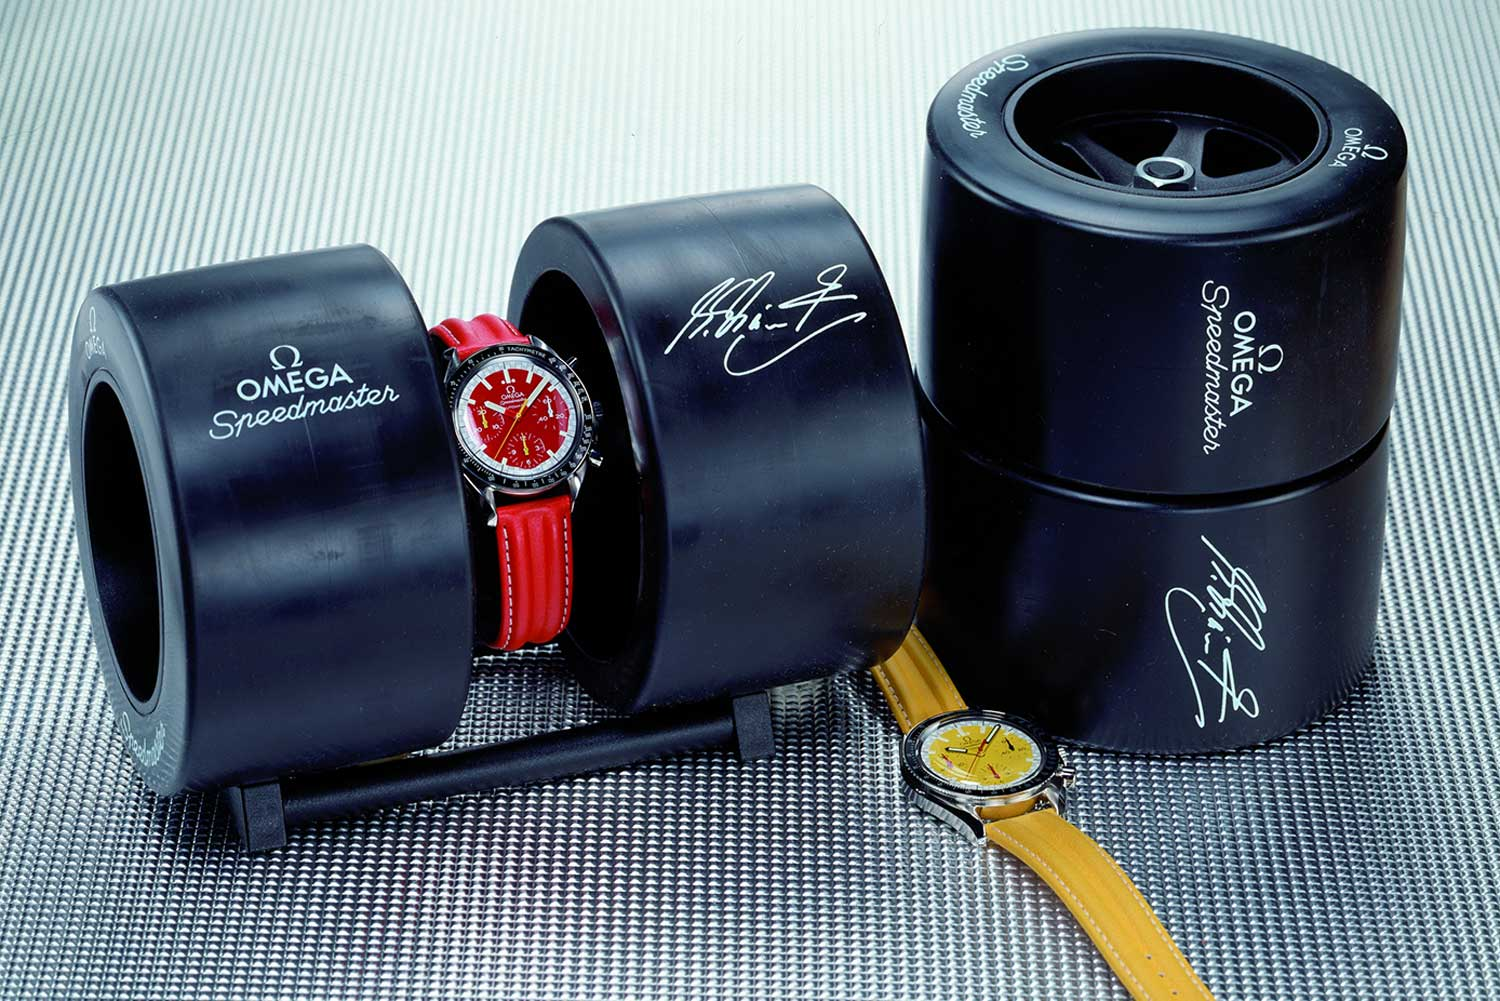 The 1996 Racing Speedmaster Reduced Launched by Michael Schumacher seen here with the special presentation cases (Image: omegawatches.com)